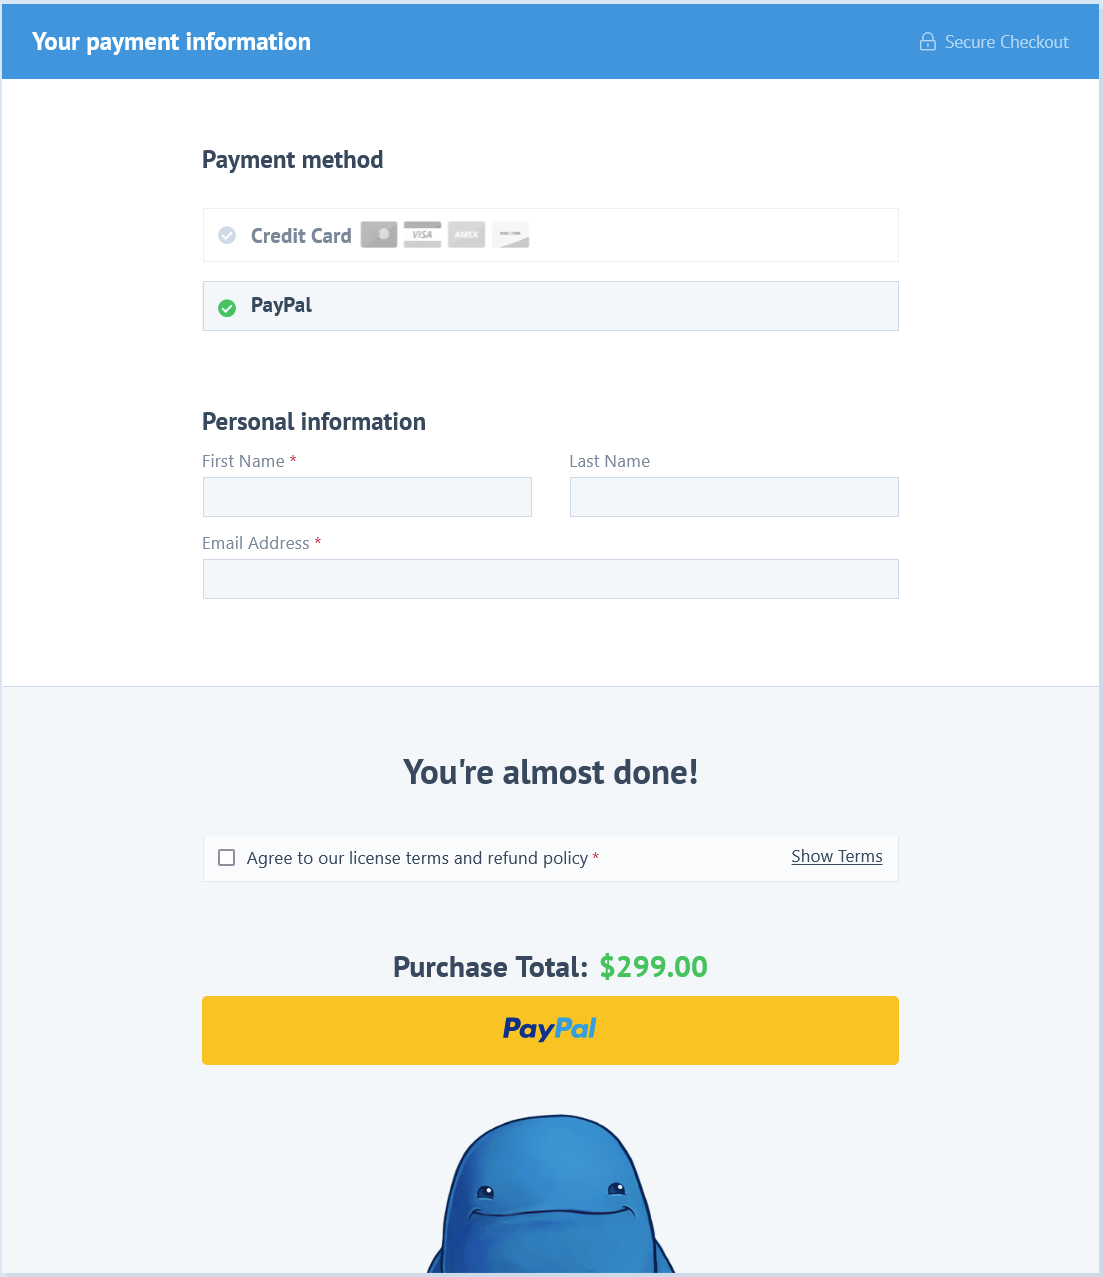 View of the new PayPal branded checkout button on the Easy Digital Downloads site checkout.